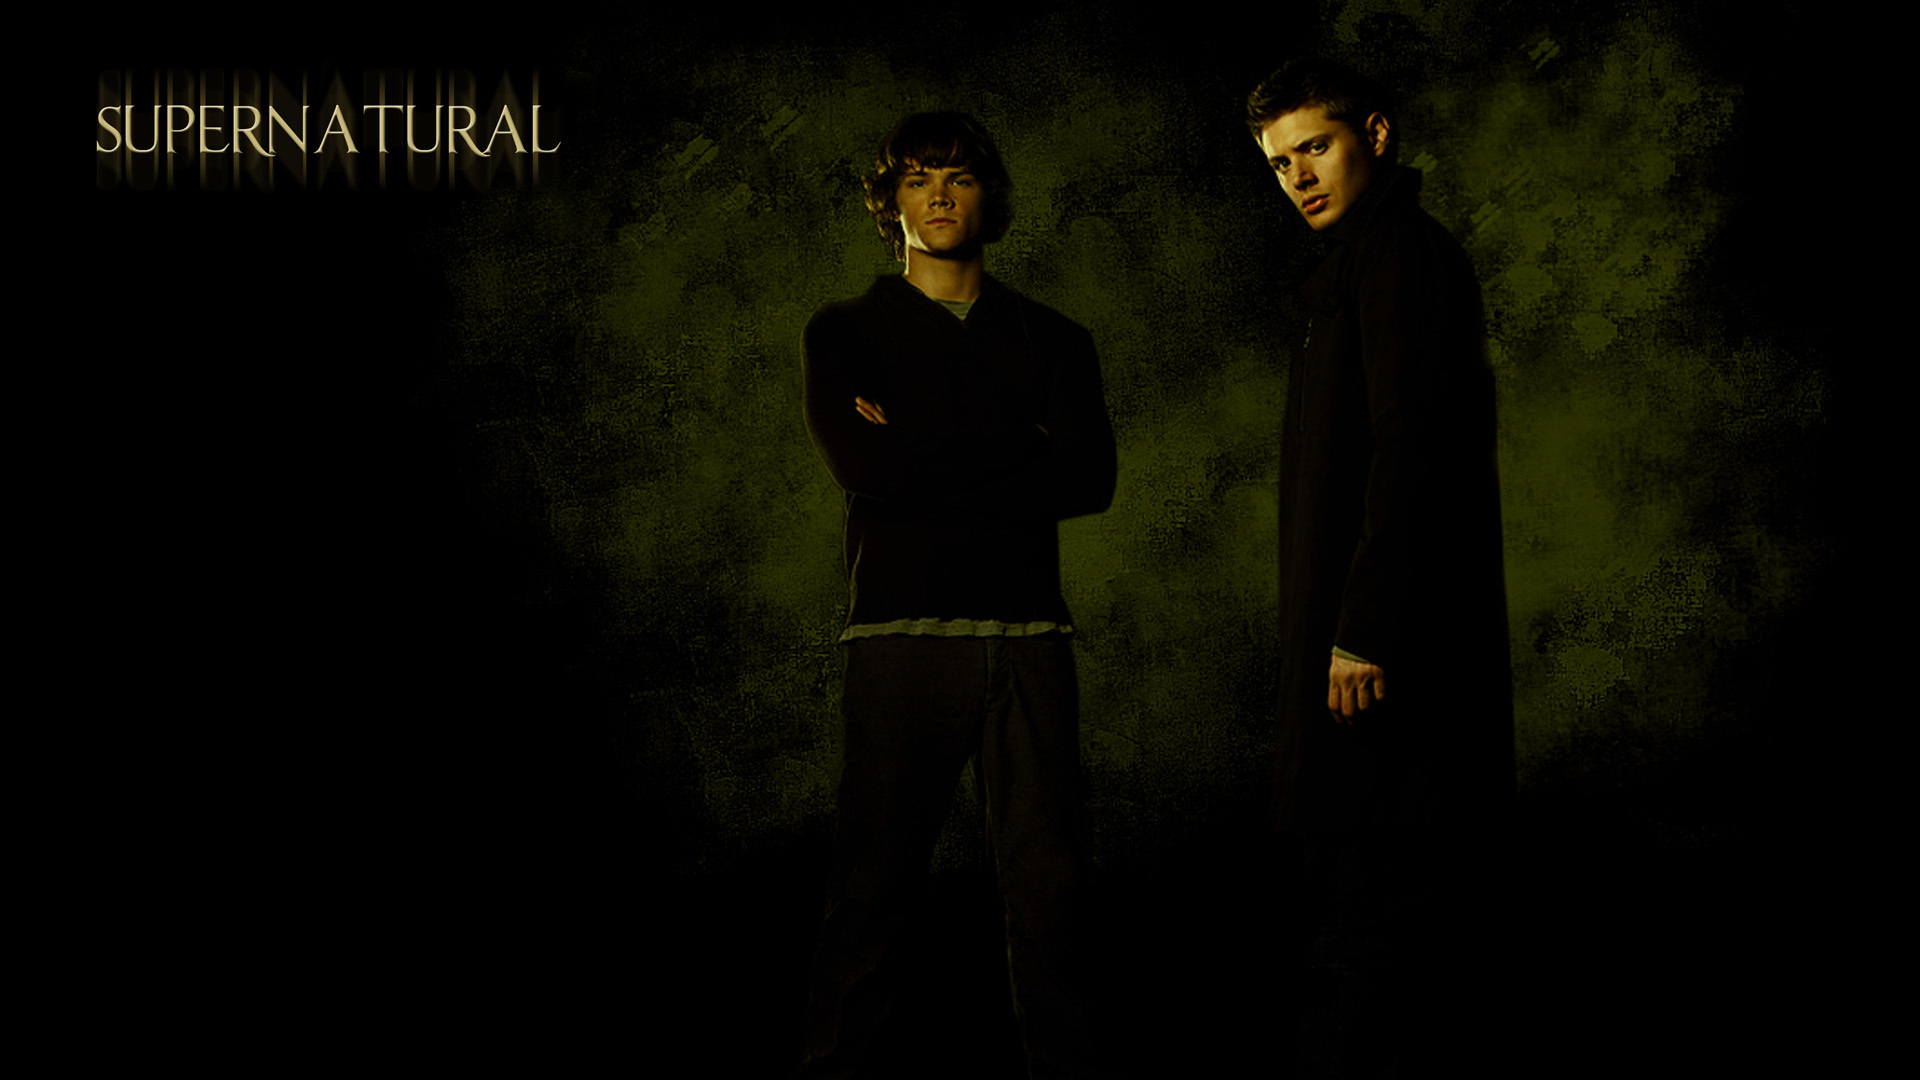 Free download Supernatural Wallpaper